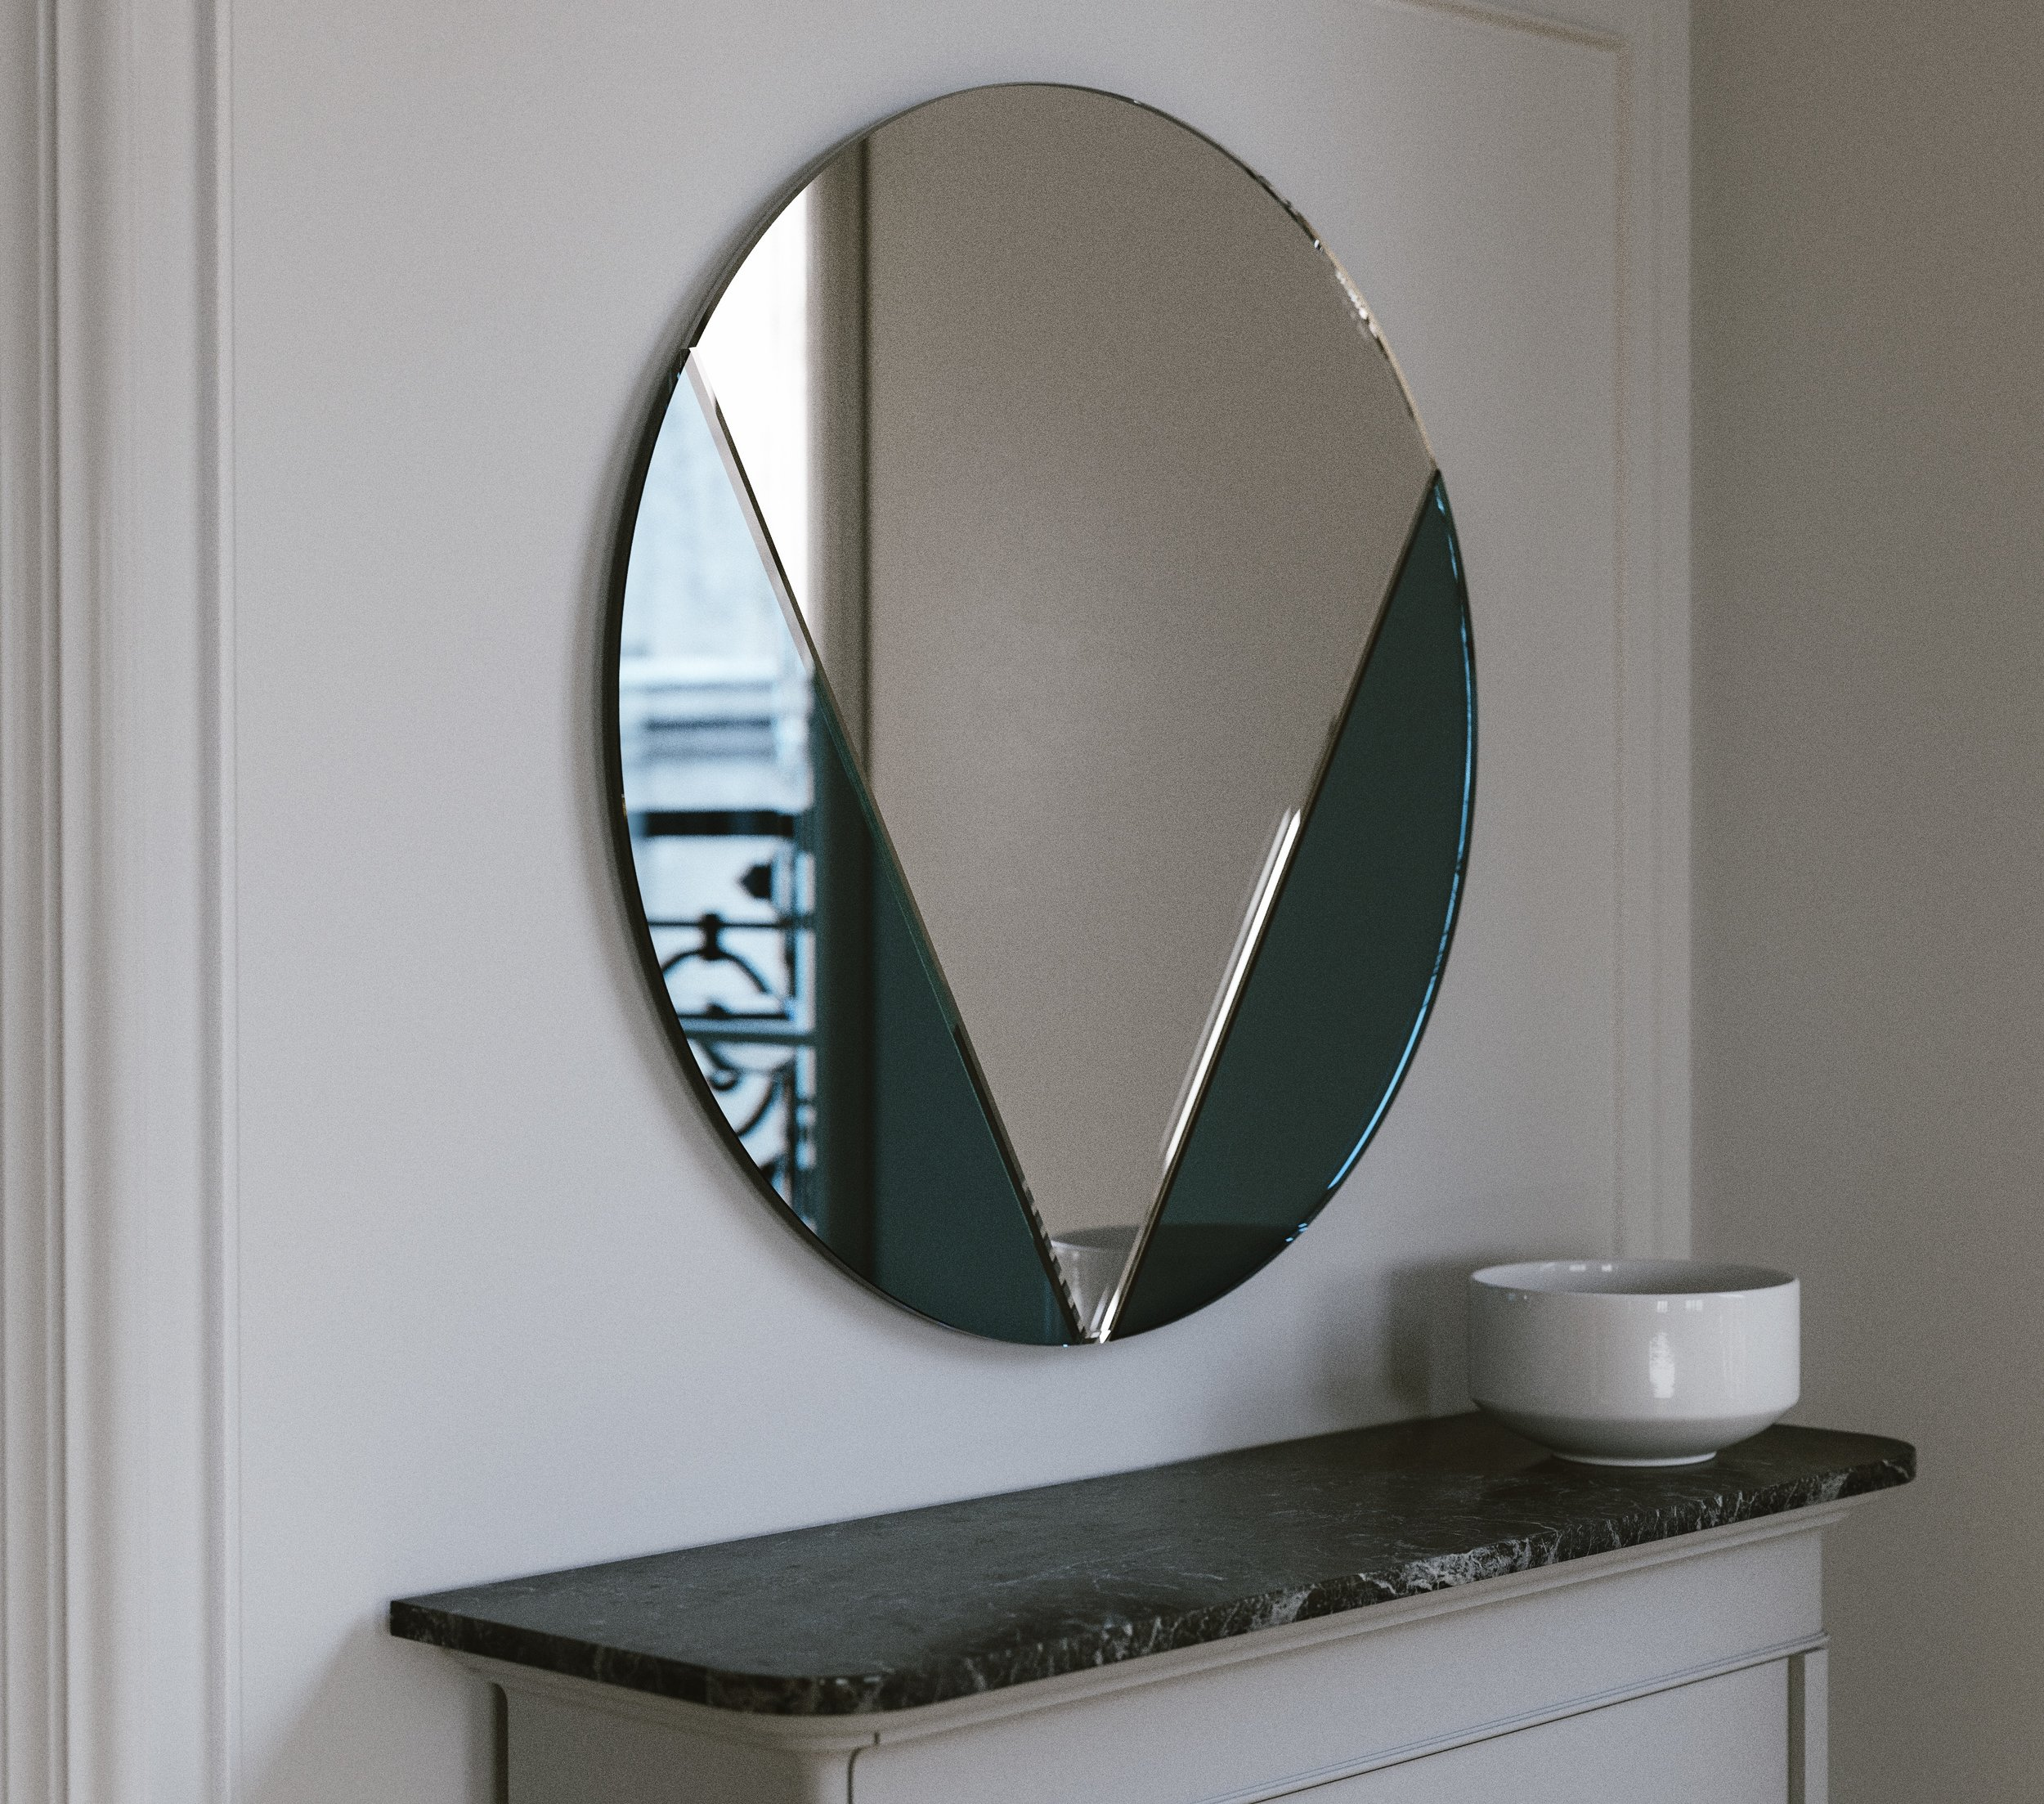 Full View of Blue Art Deco Style Mirror